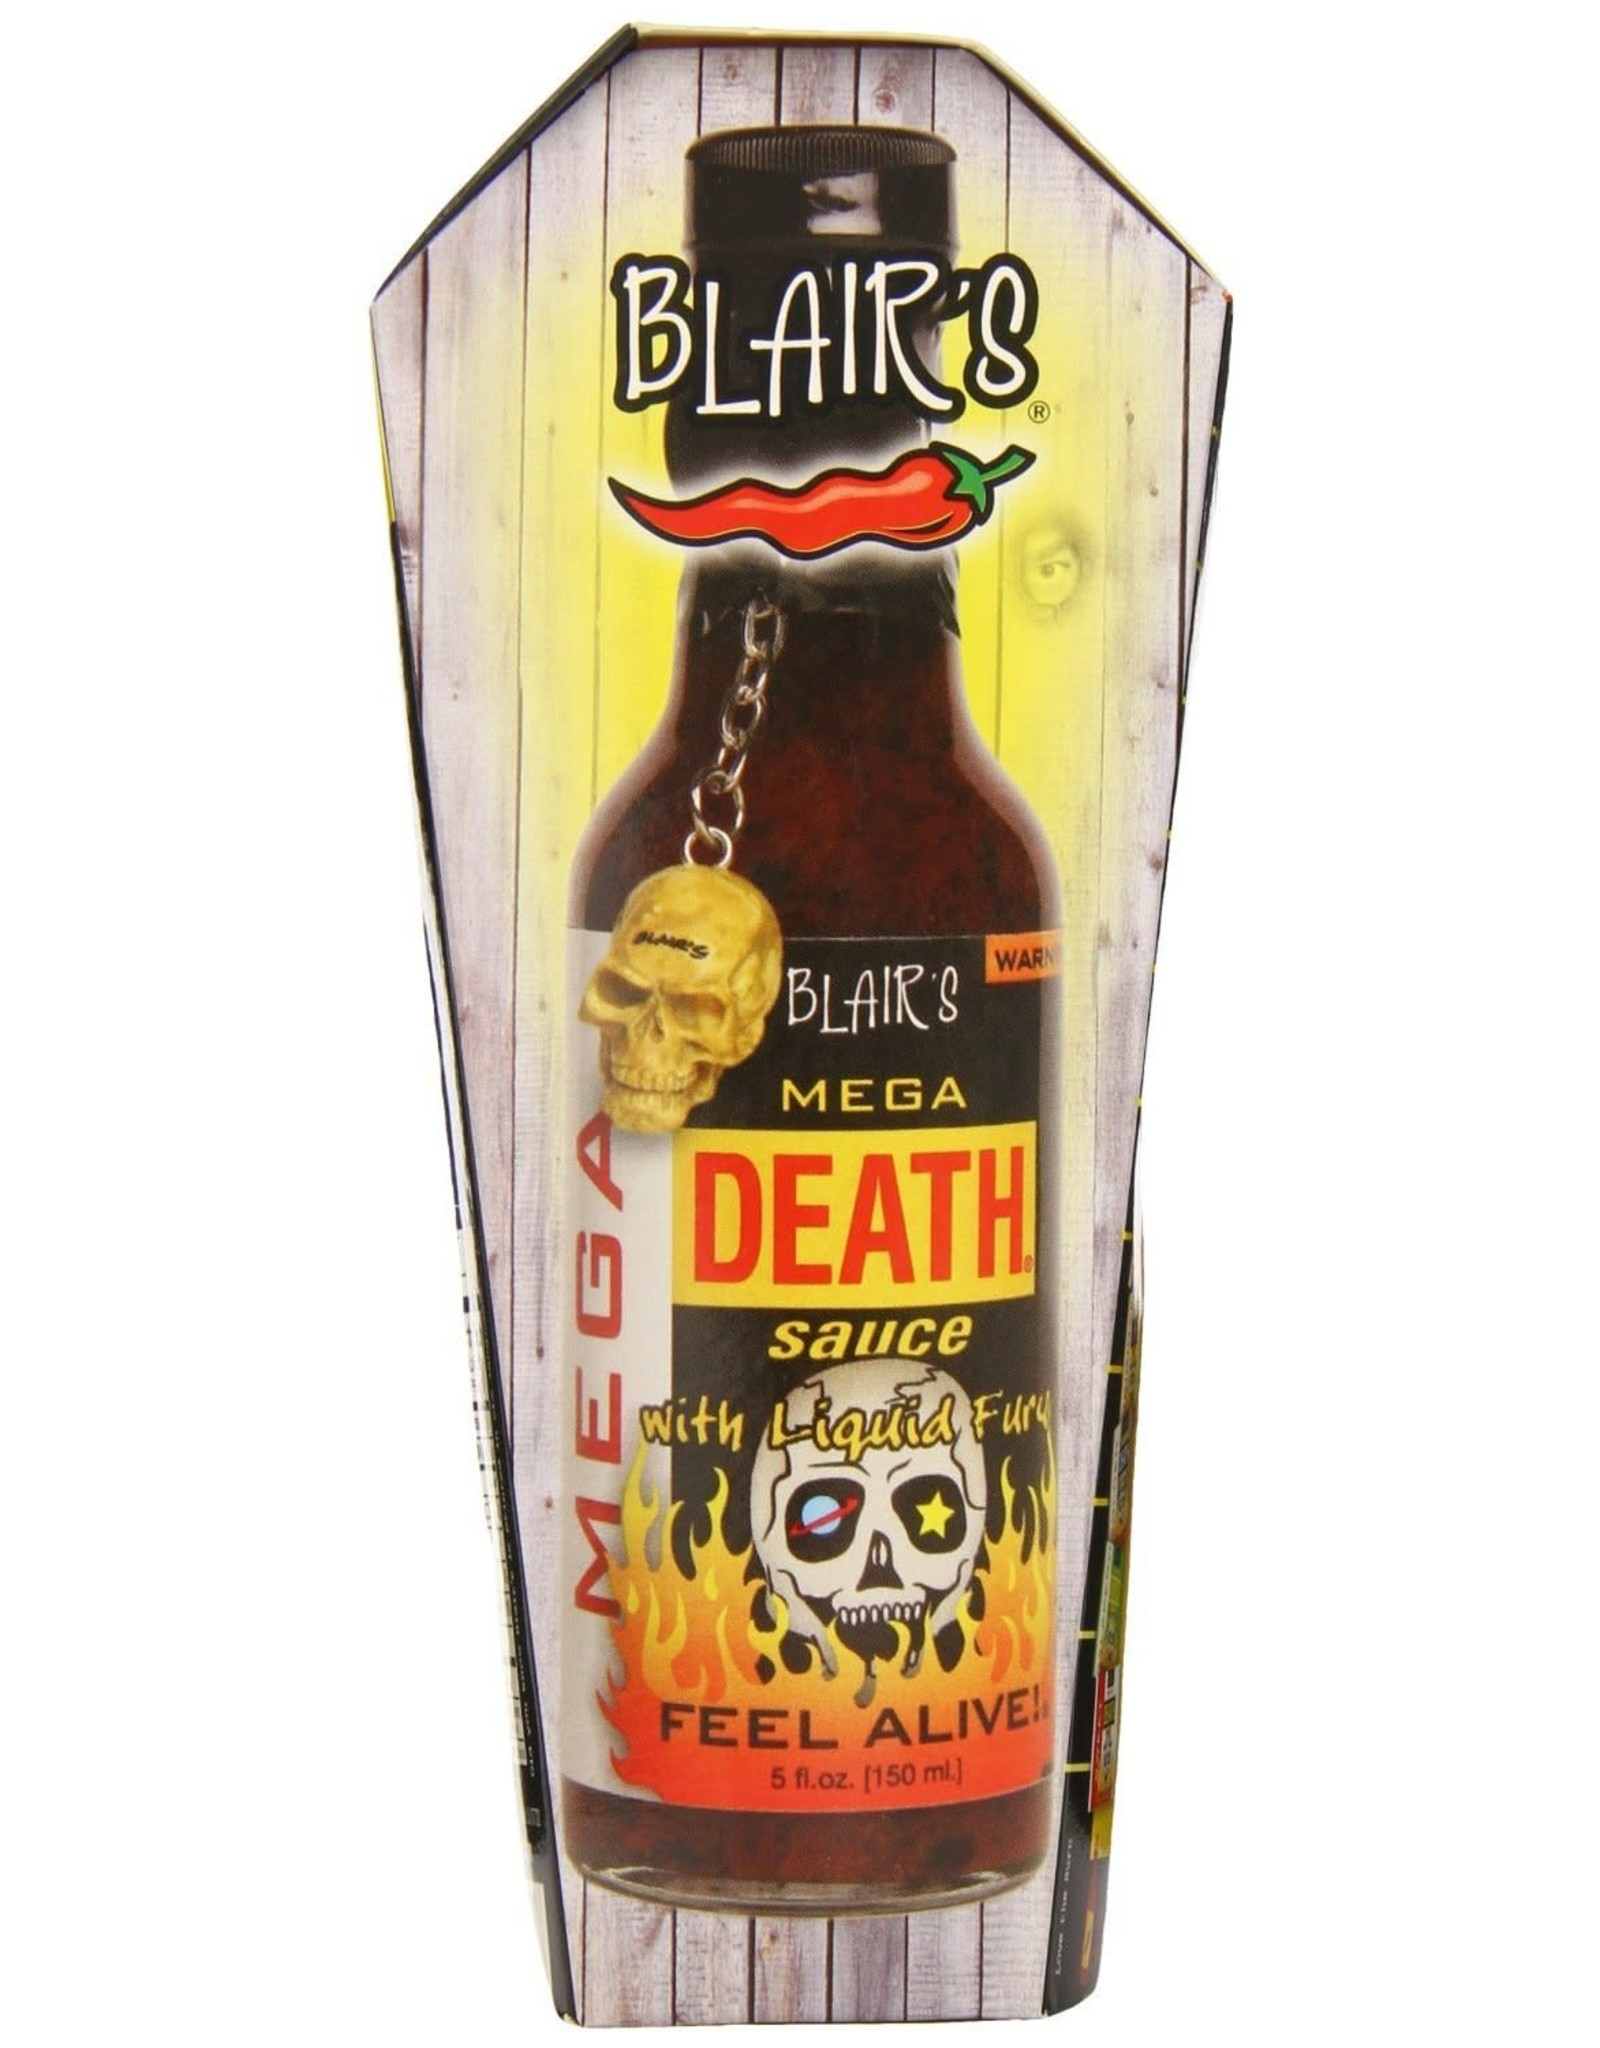 Blair's Mega Death Sauce with Liquid Rage - 150ml